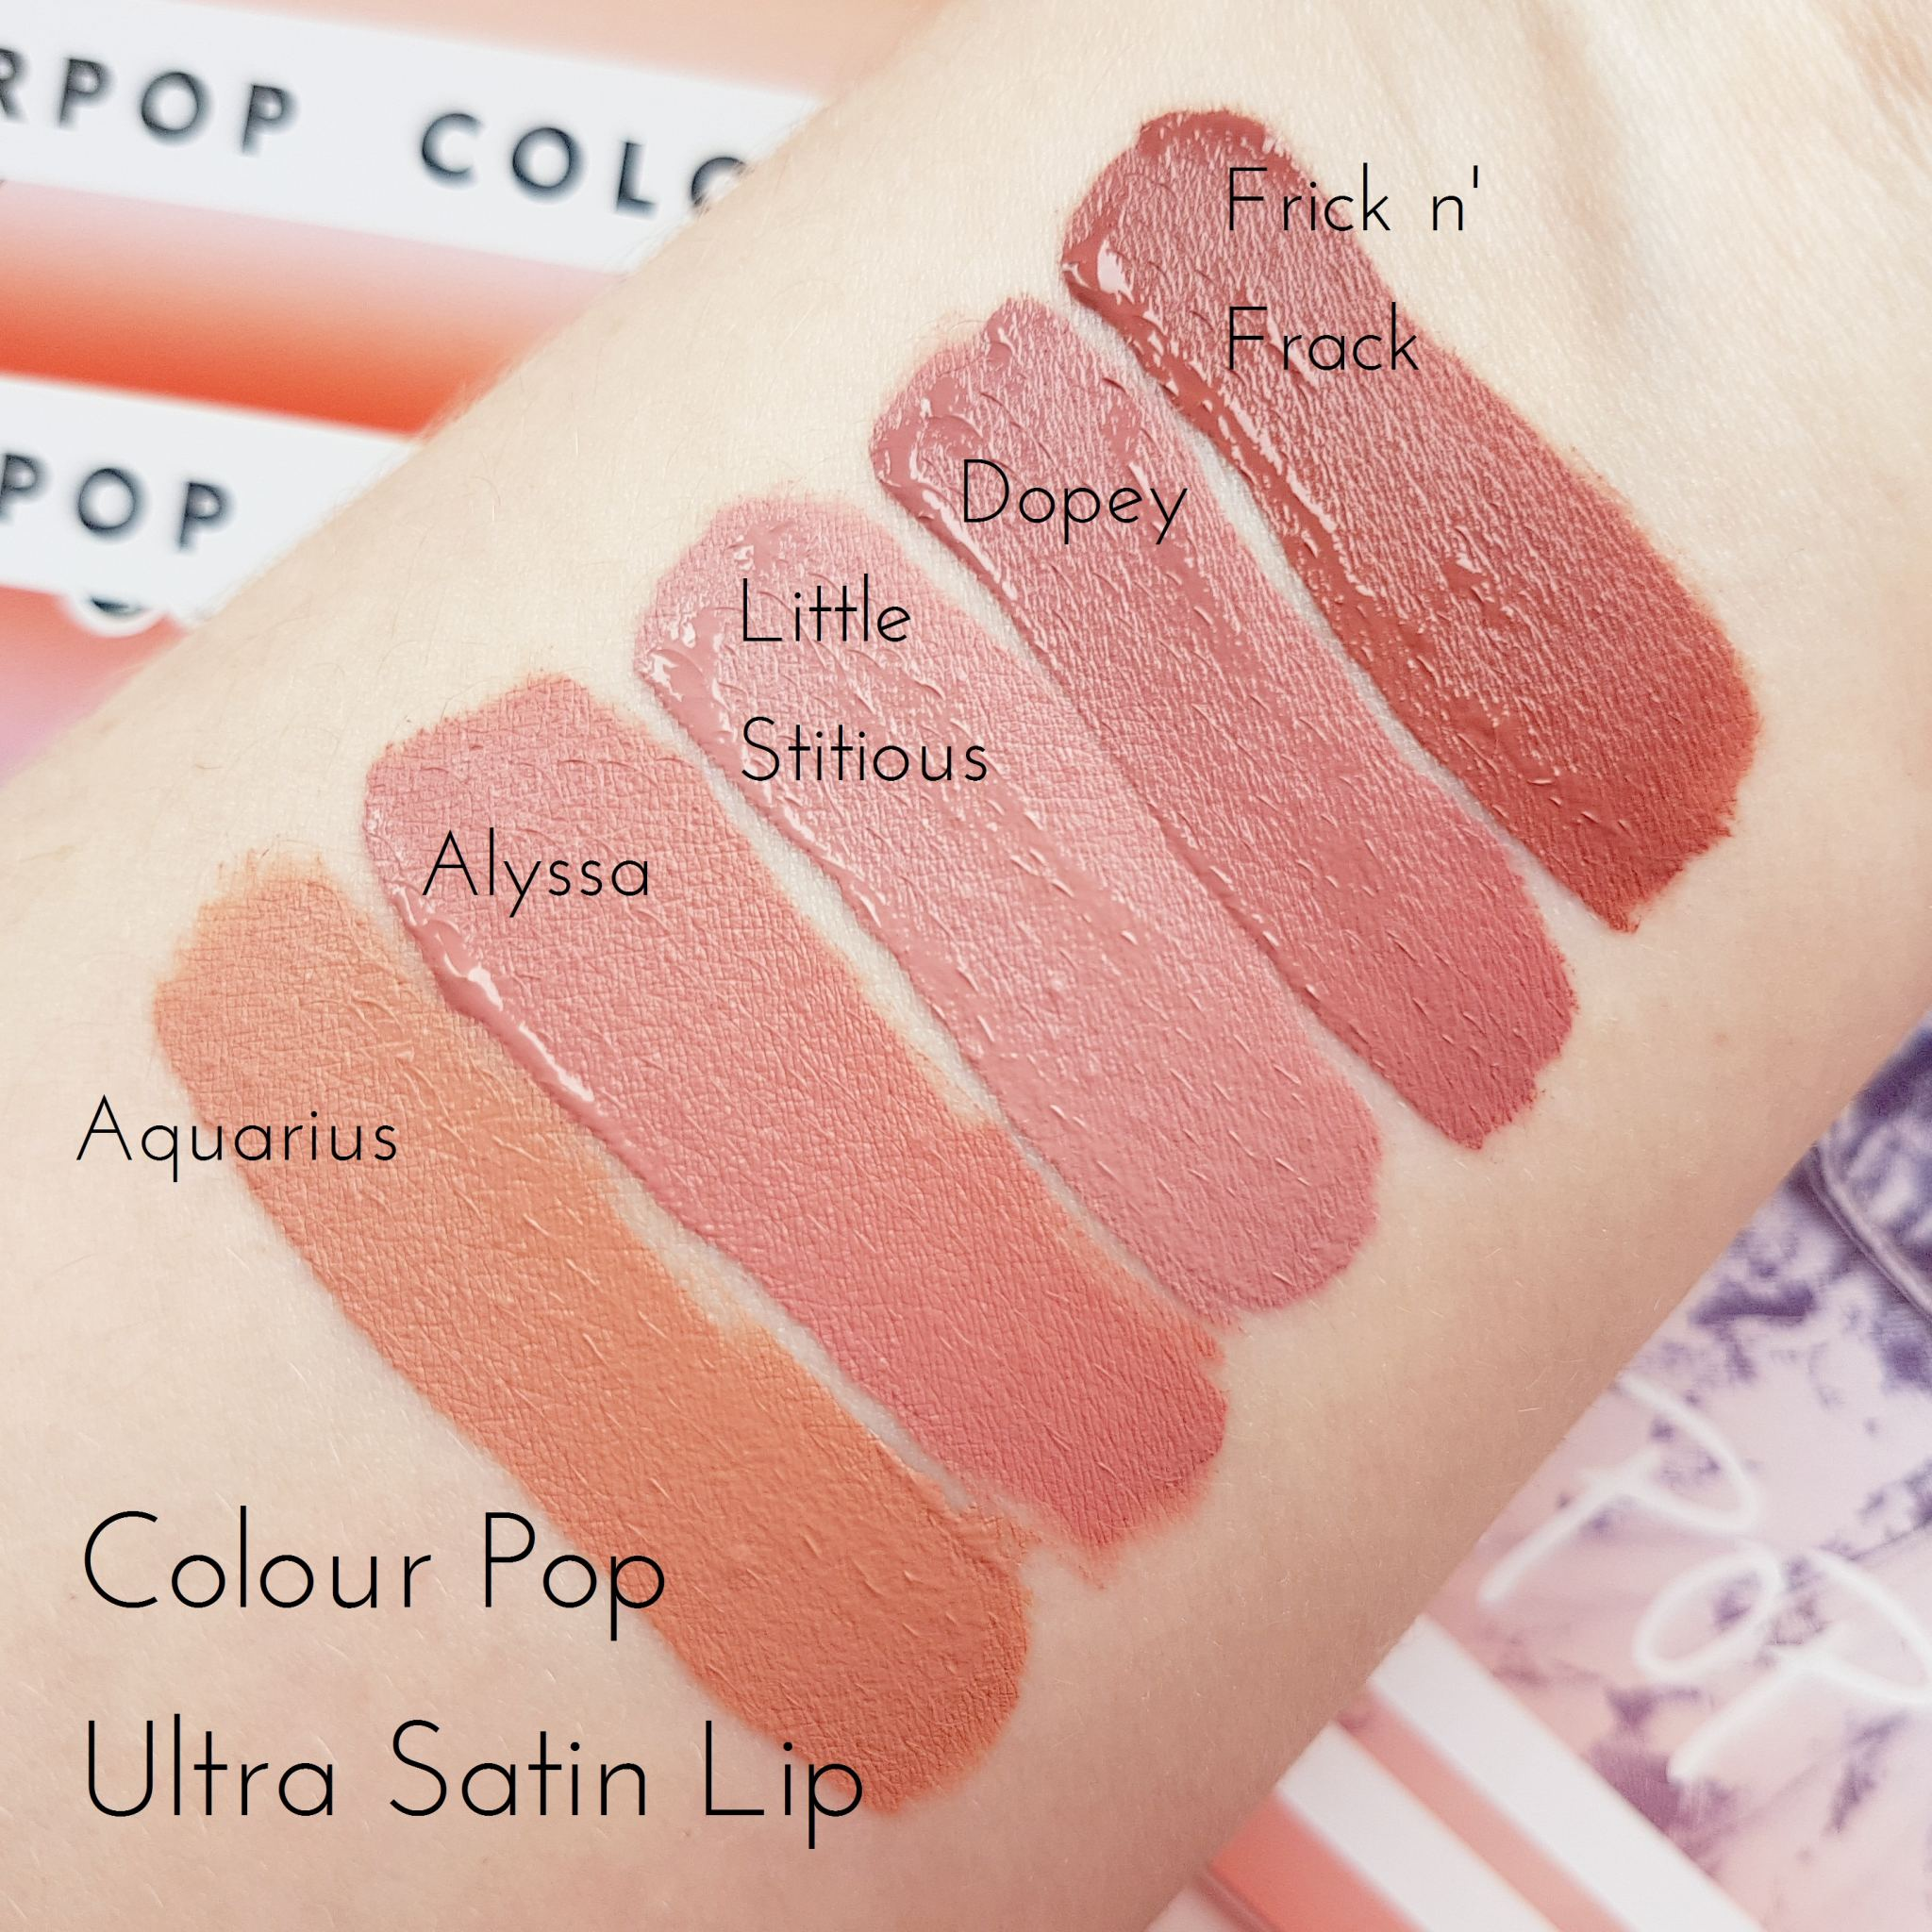 Ultra Satin Lipstick Swatches - Aquarius, Alyssa, Littlestitious, Dopey and Frick n' Frack